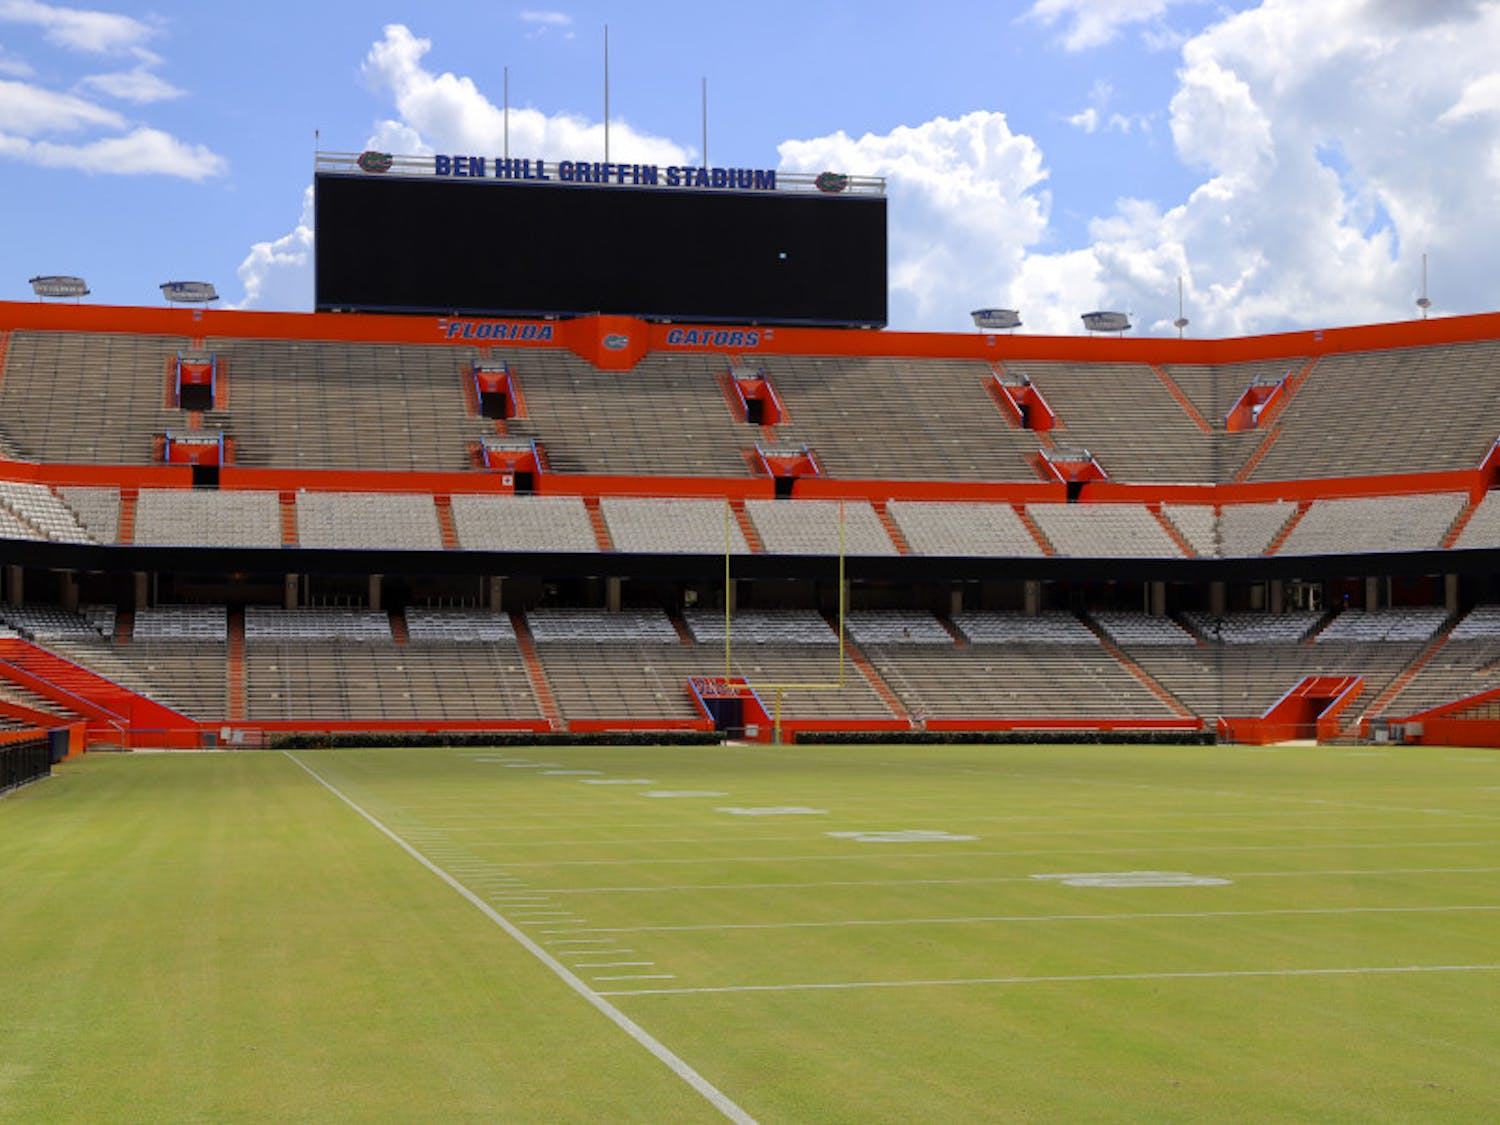 On Saturday, Ben Hill Griffin Stadium will house 2,000 students, among other fans, for the Gators' season opener. The UF chapter of Young Americans for Freedom plans to say the Gator Bait chant, despite the university's banning of the phrase at sporting events.